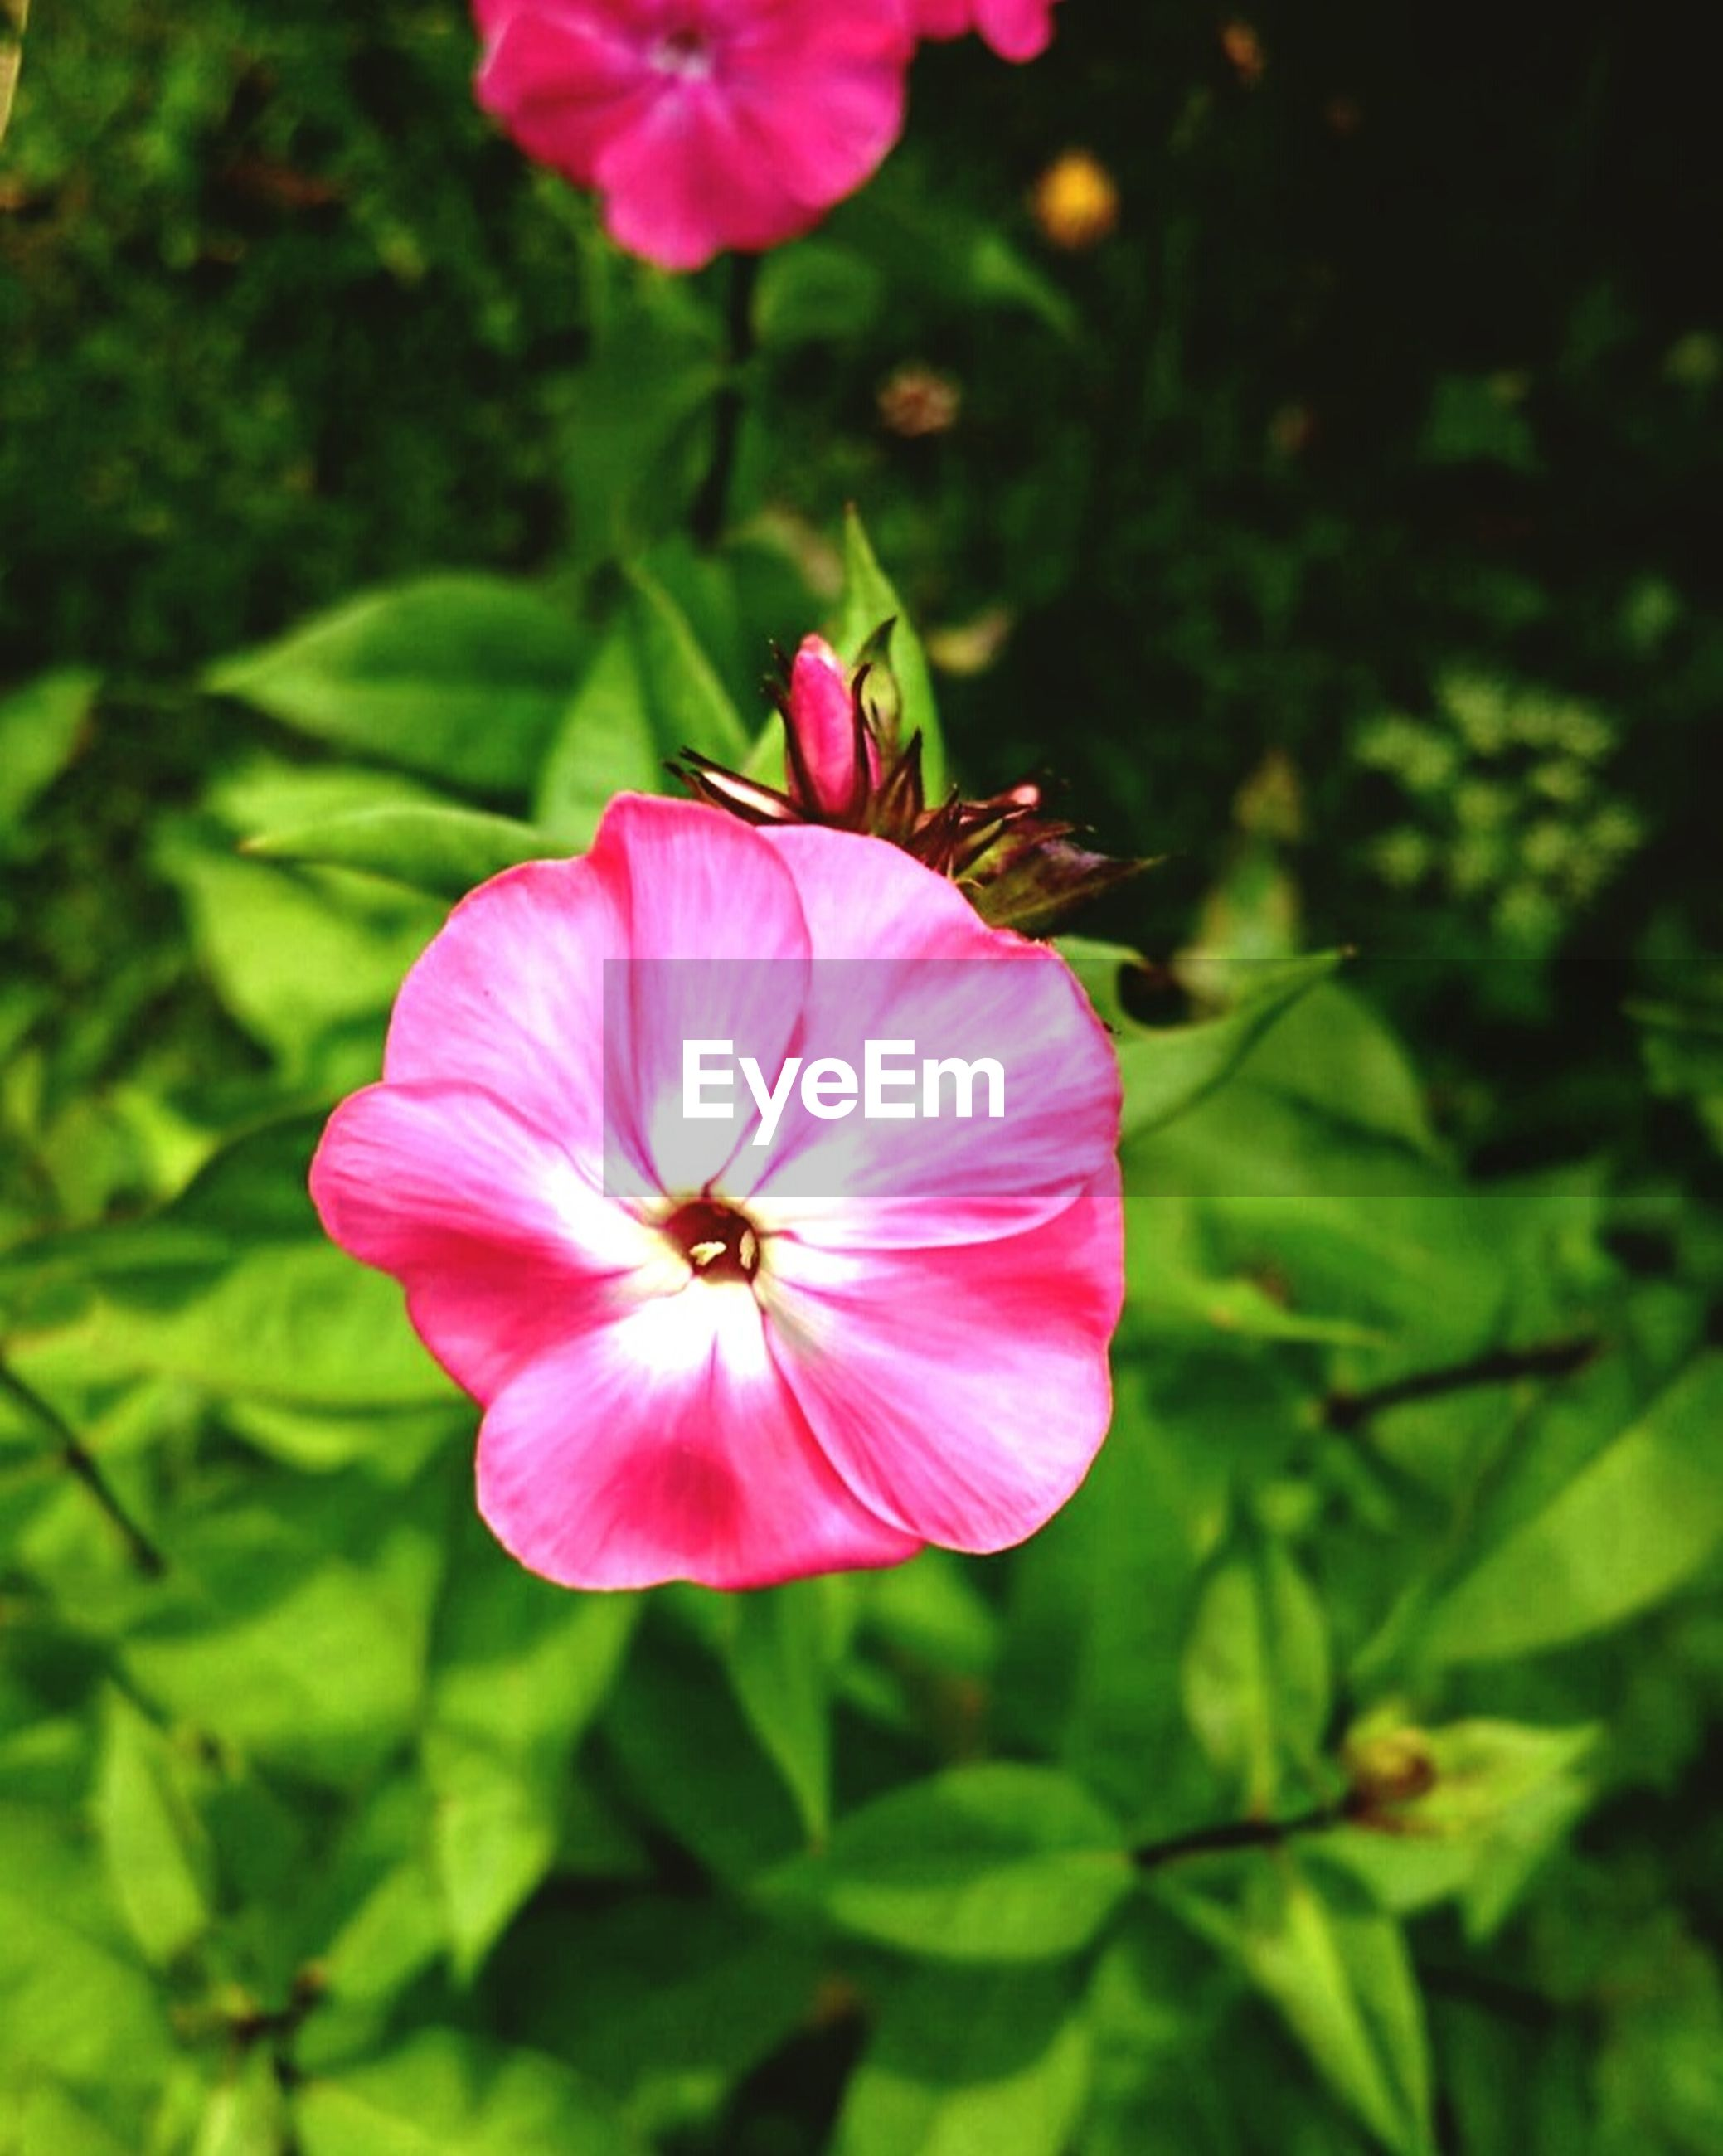 flower, petal, freshness, flower head, fragility, growth, beauty in nature, pink color, close-up, blooming, focus on foreground, nature, plant, pollen, stamen, in bloom, day, outdoors, no people, blossom, green color, botany, selective focus, softness, tranquility